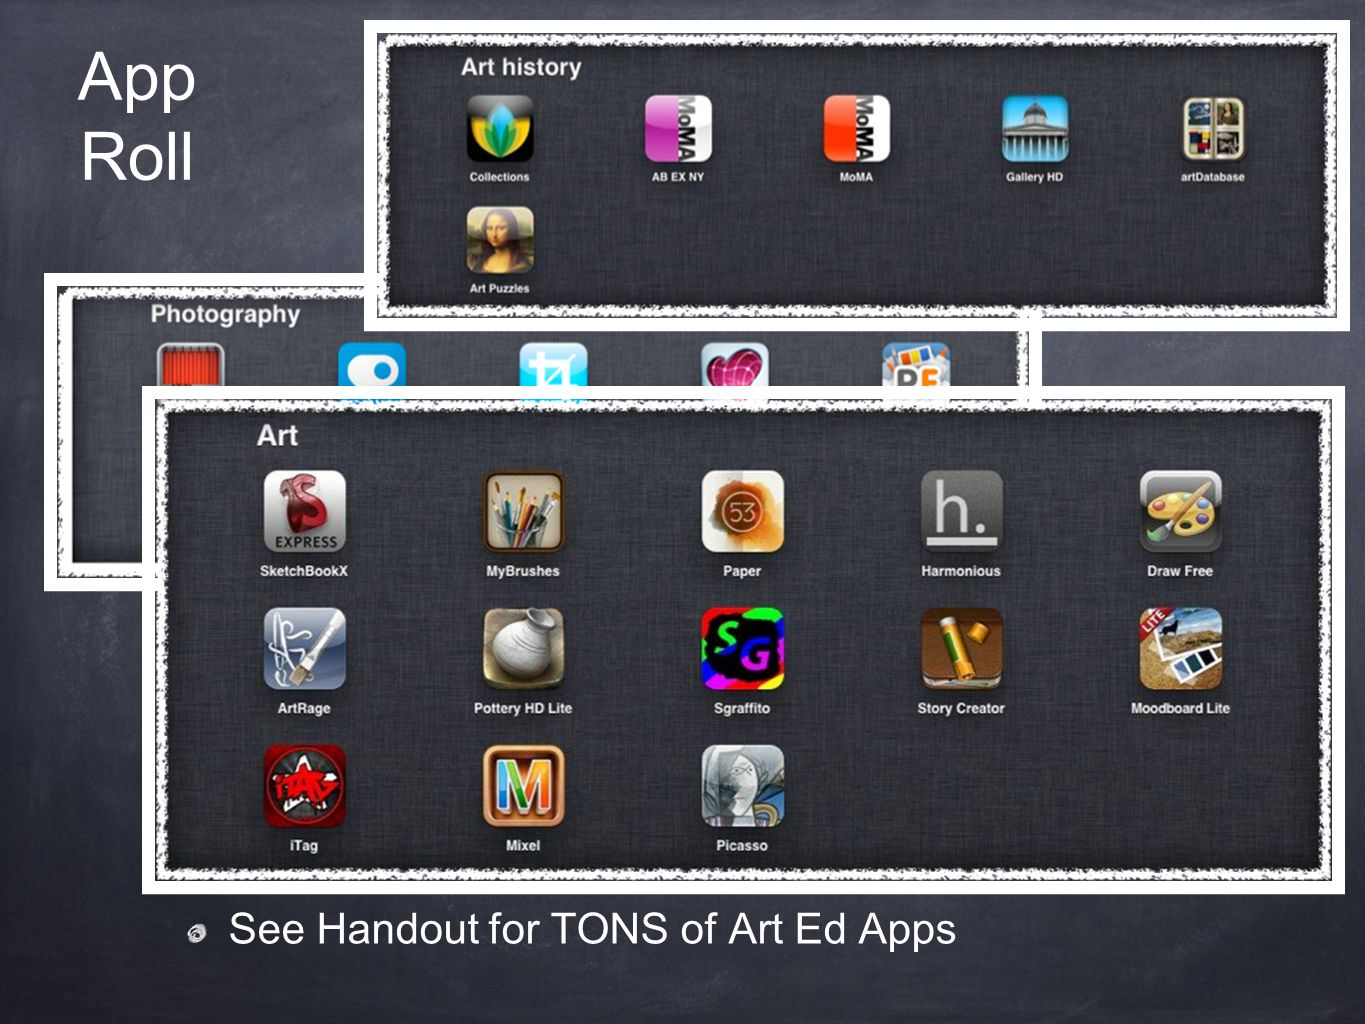 App Roll See Handout for TONS of Art Ed Apps